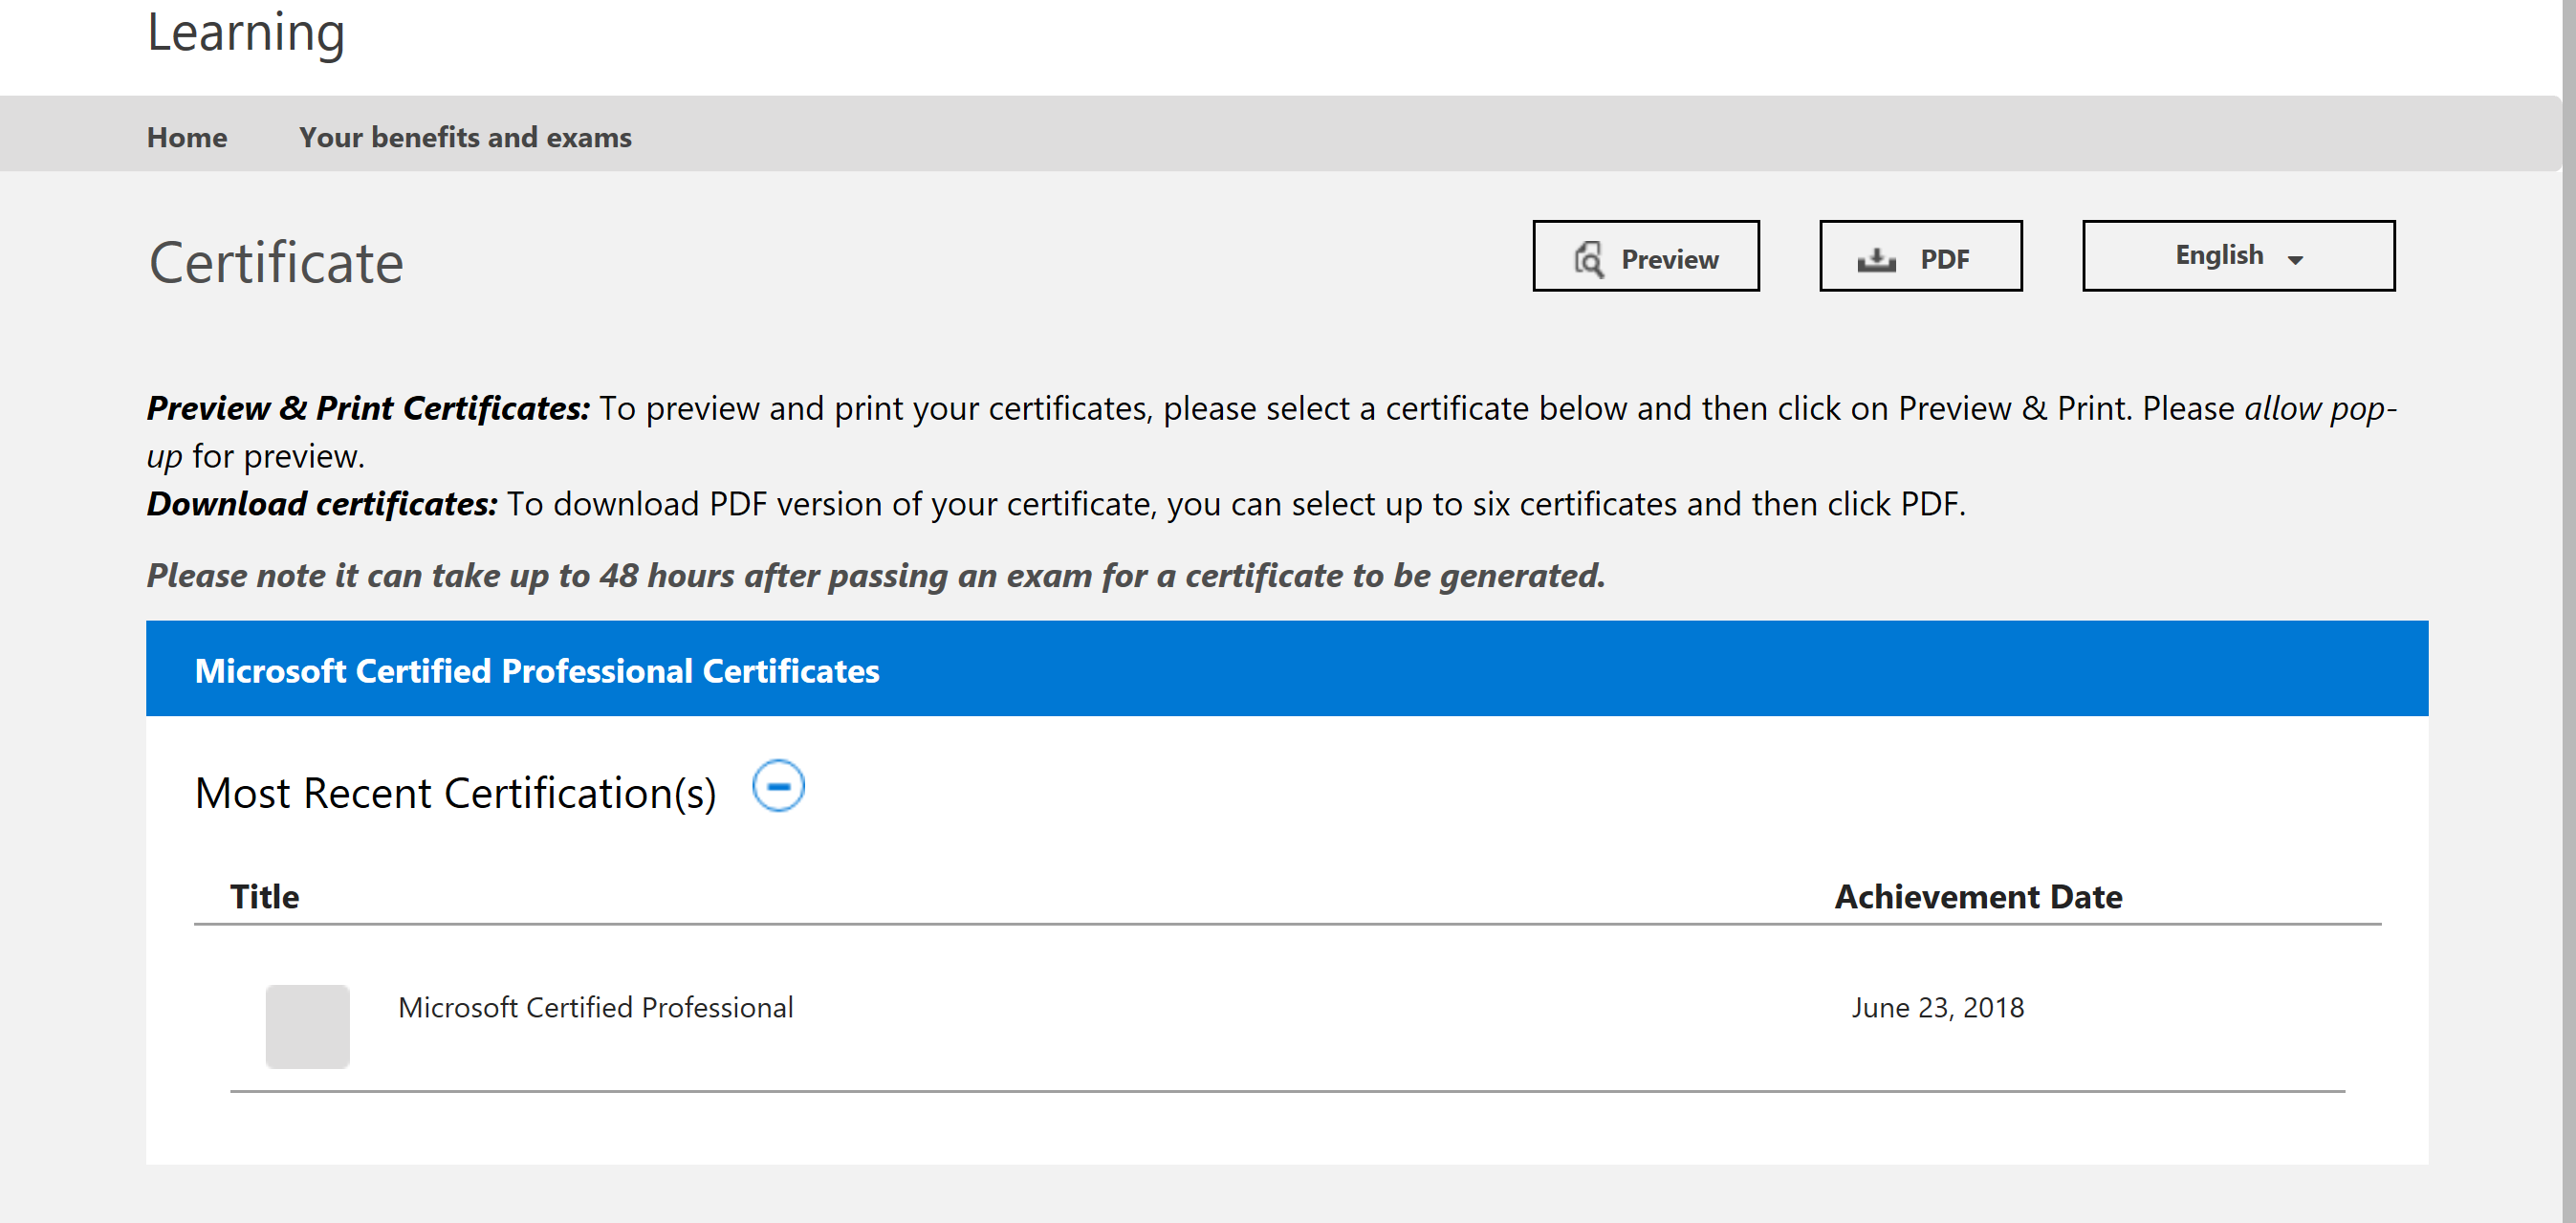 Only 1 Microsoft Certified Professional Certification Is Showing